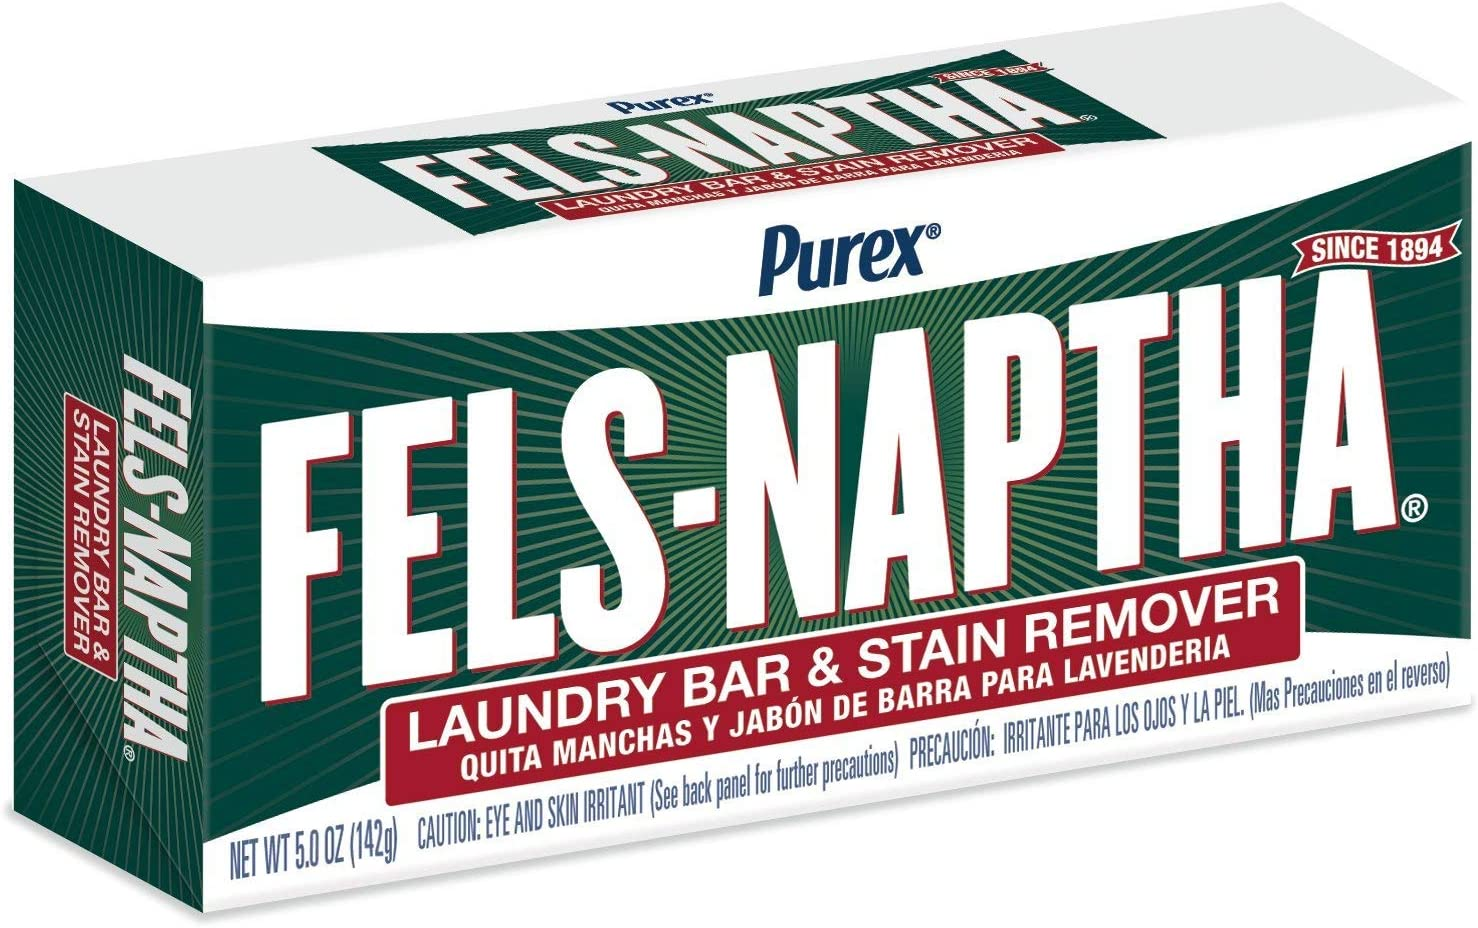 Fels Naptha Dial Laundry Soap, Multi